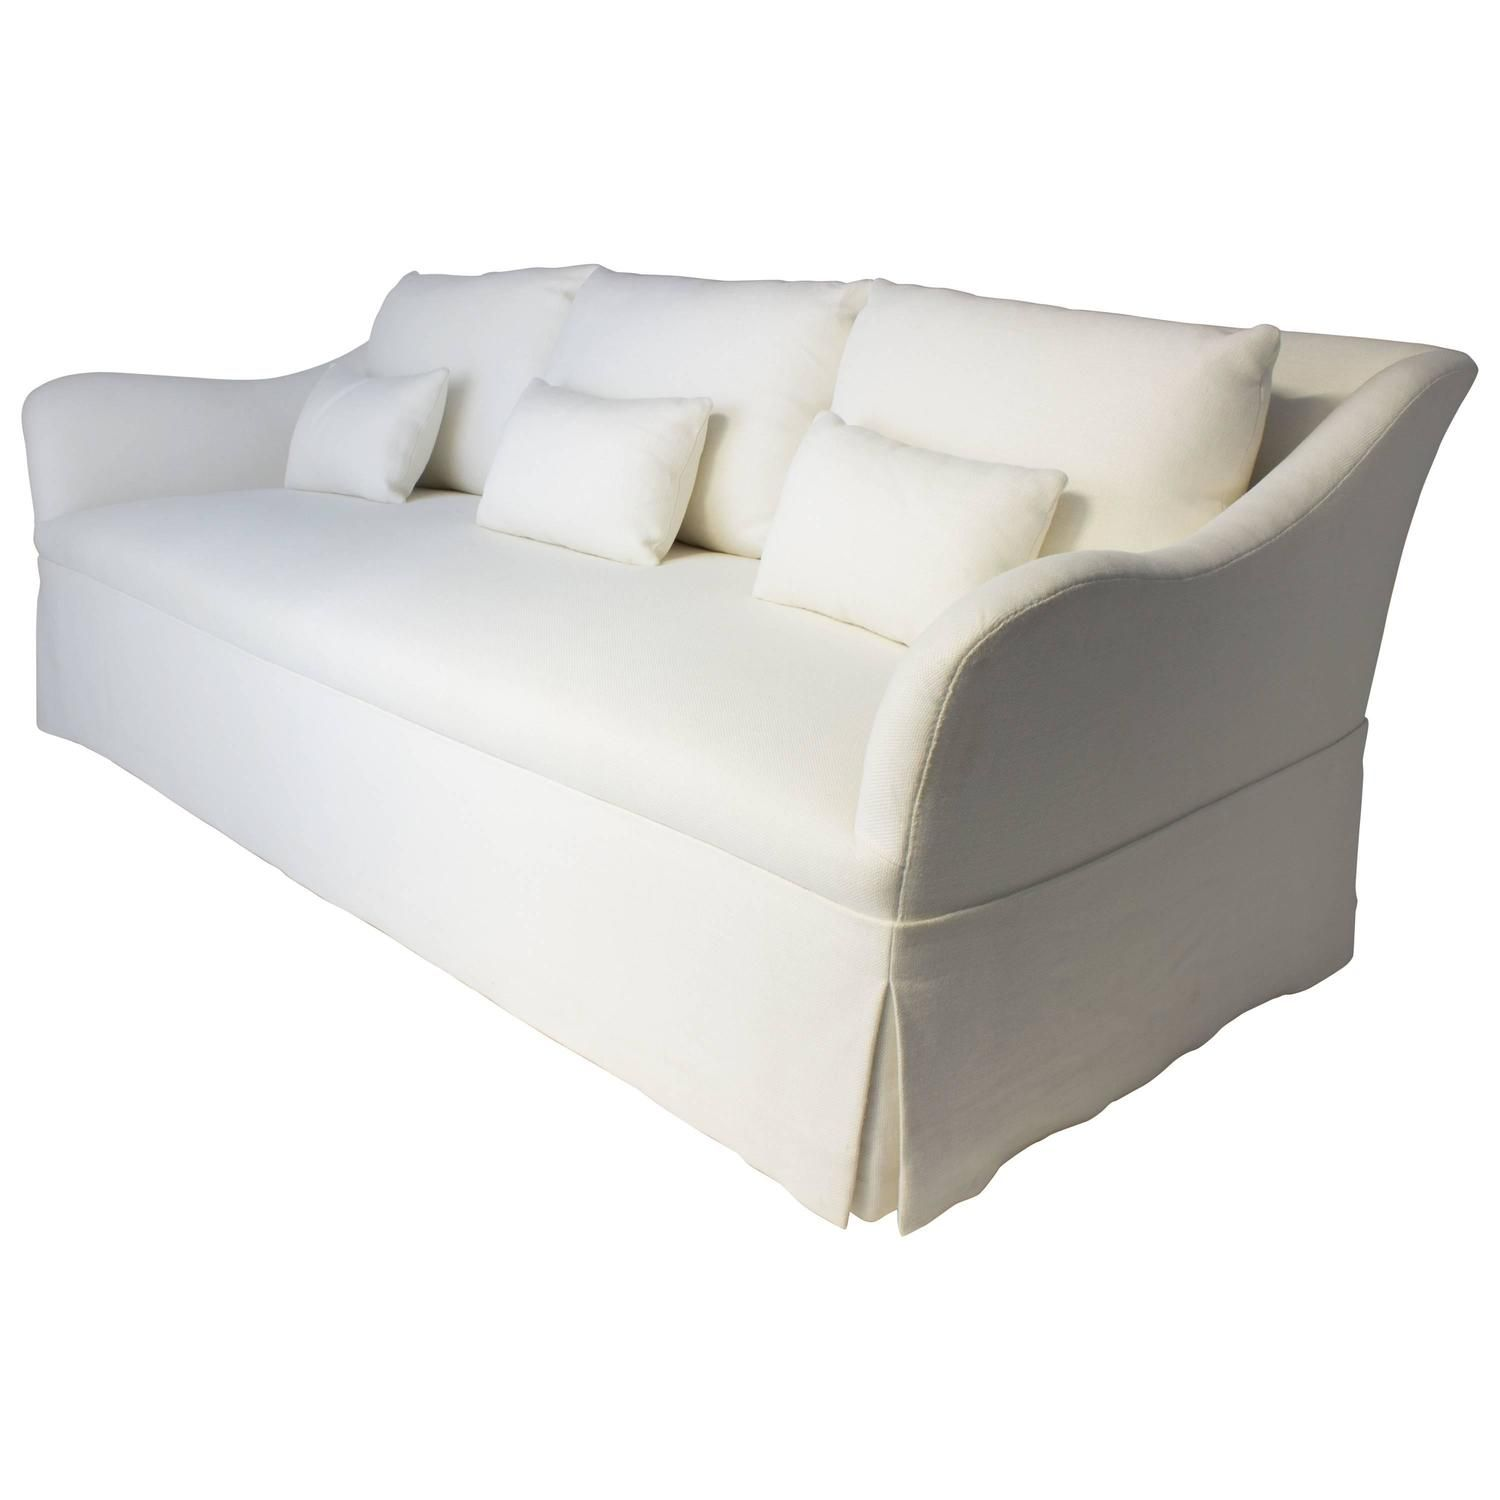 linen bench cushion sofa modern sets with price custom fabricated six loose back cushions in